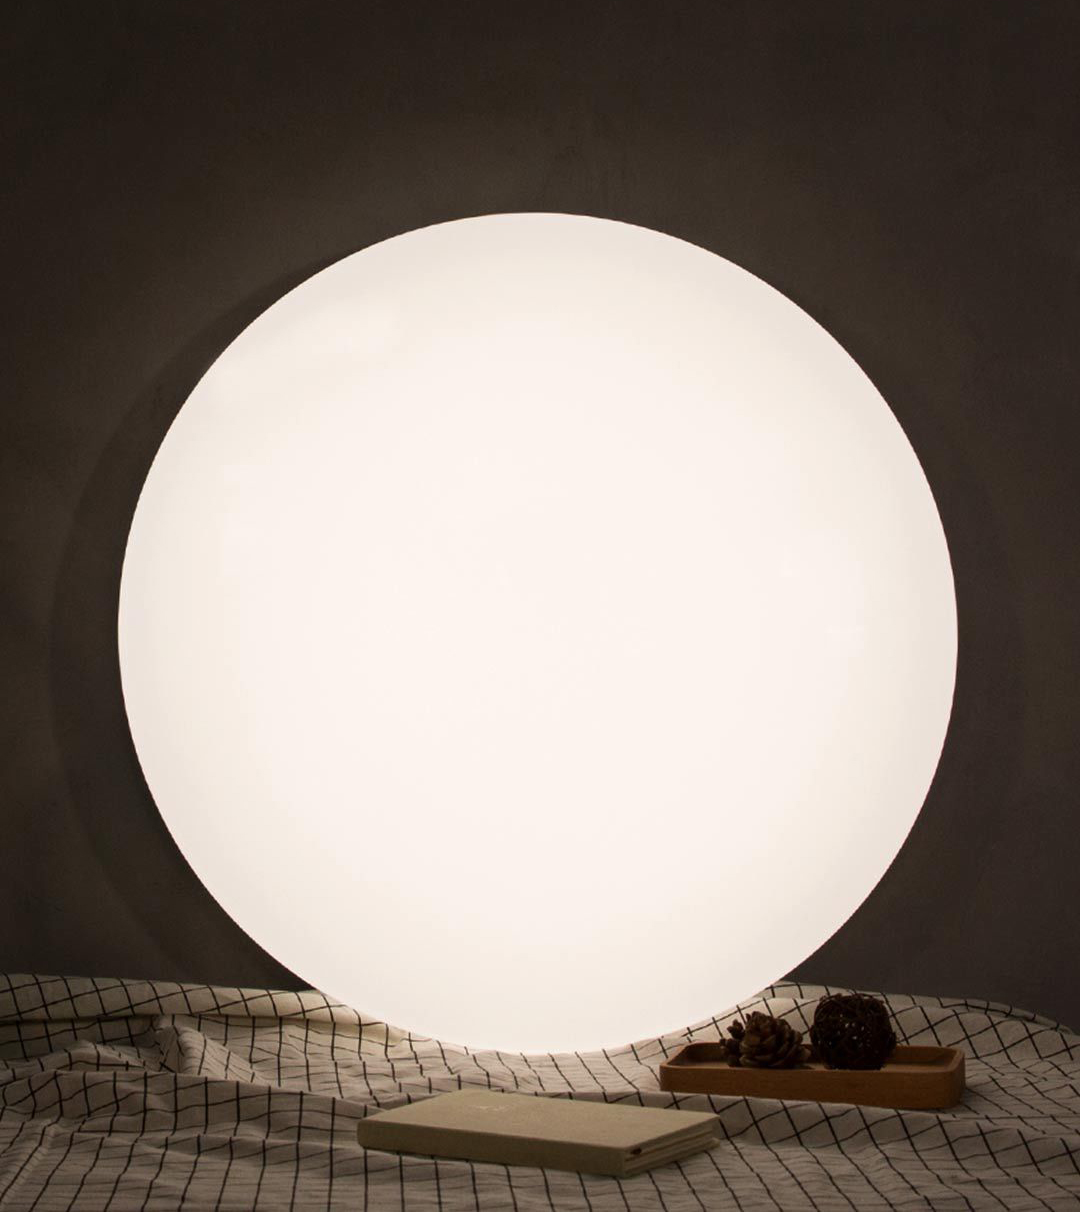 Xiaomi Yeelight Bright Moon 480 Stars Smart LED Ceiling Lamp Photo 1